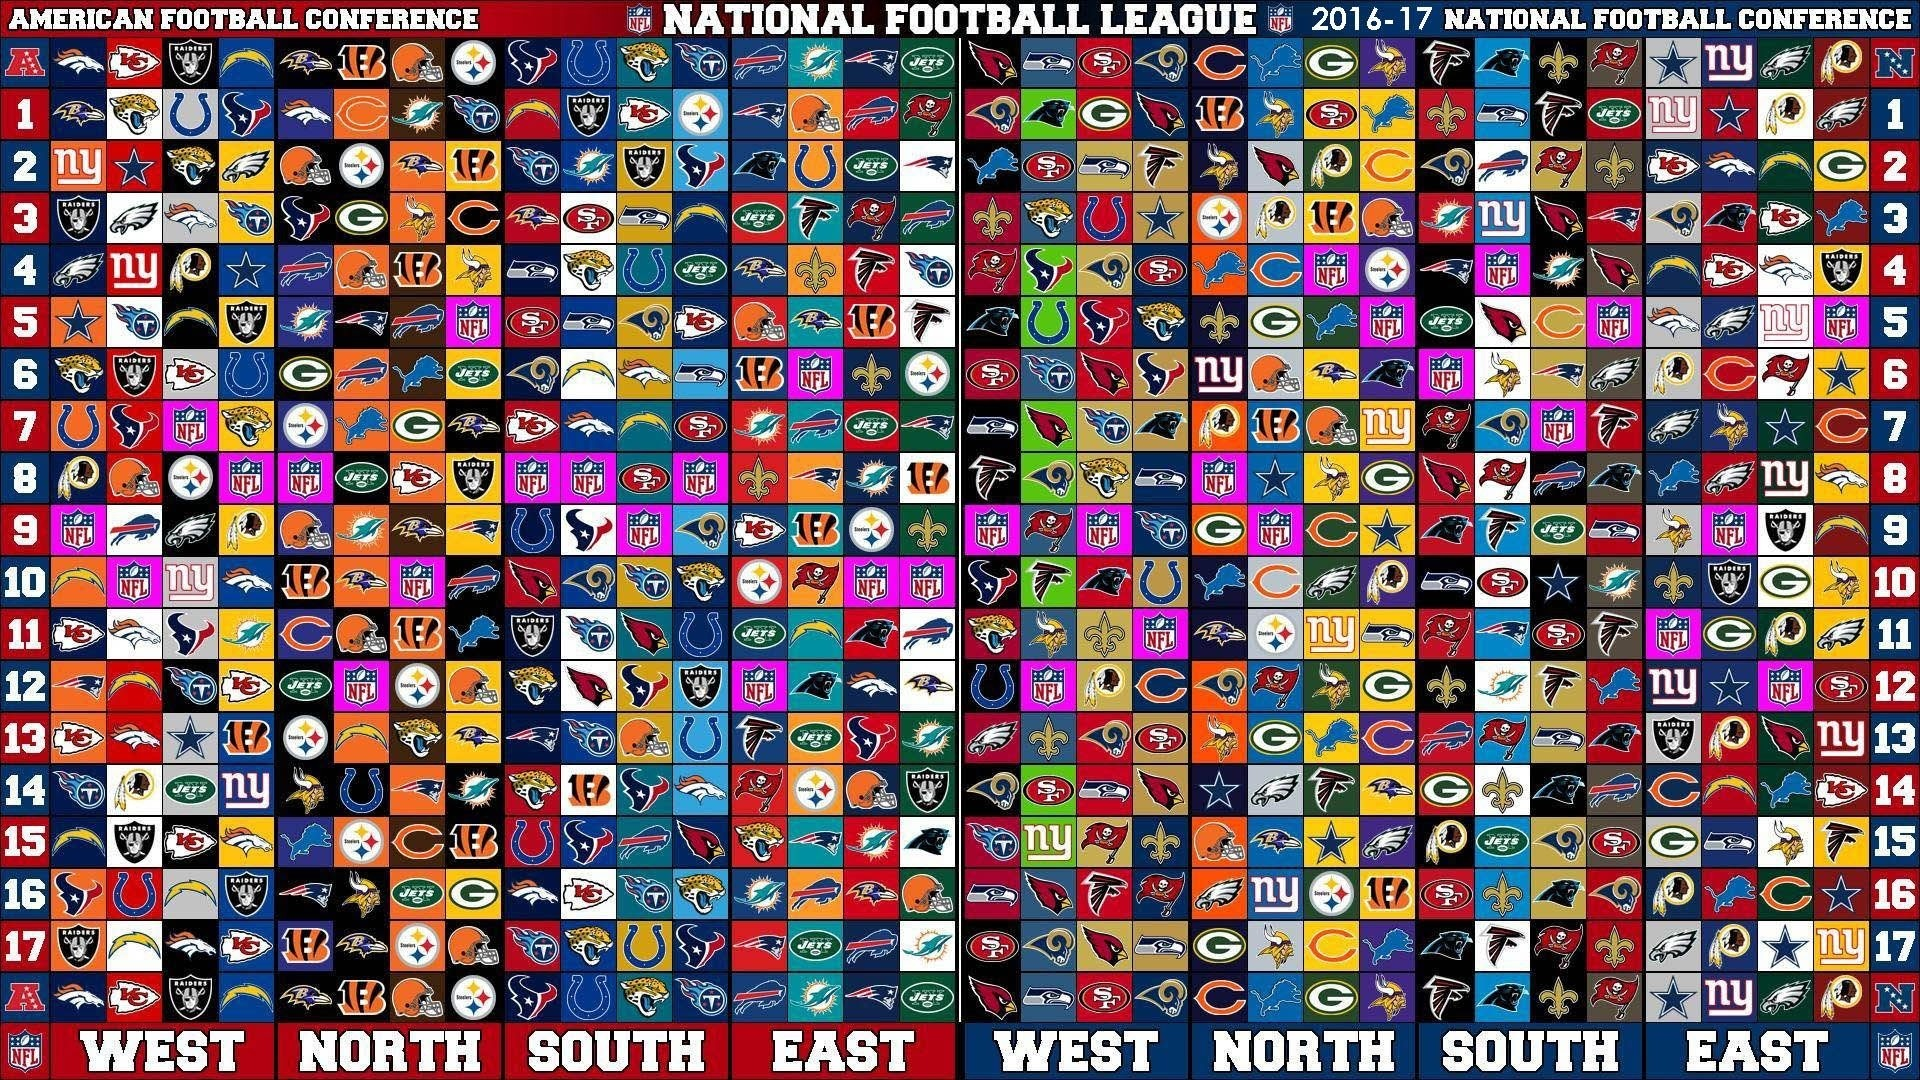 1920x1080 Nfl Teams Wallpapers 2016 Wallpaper Cave Live 2017